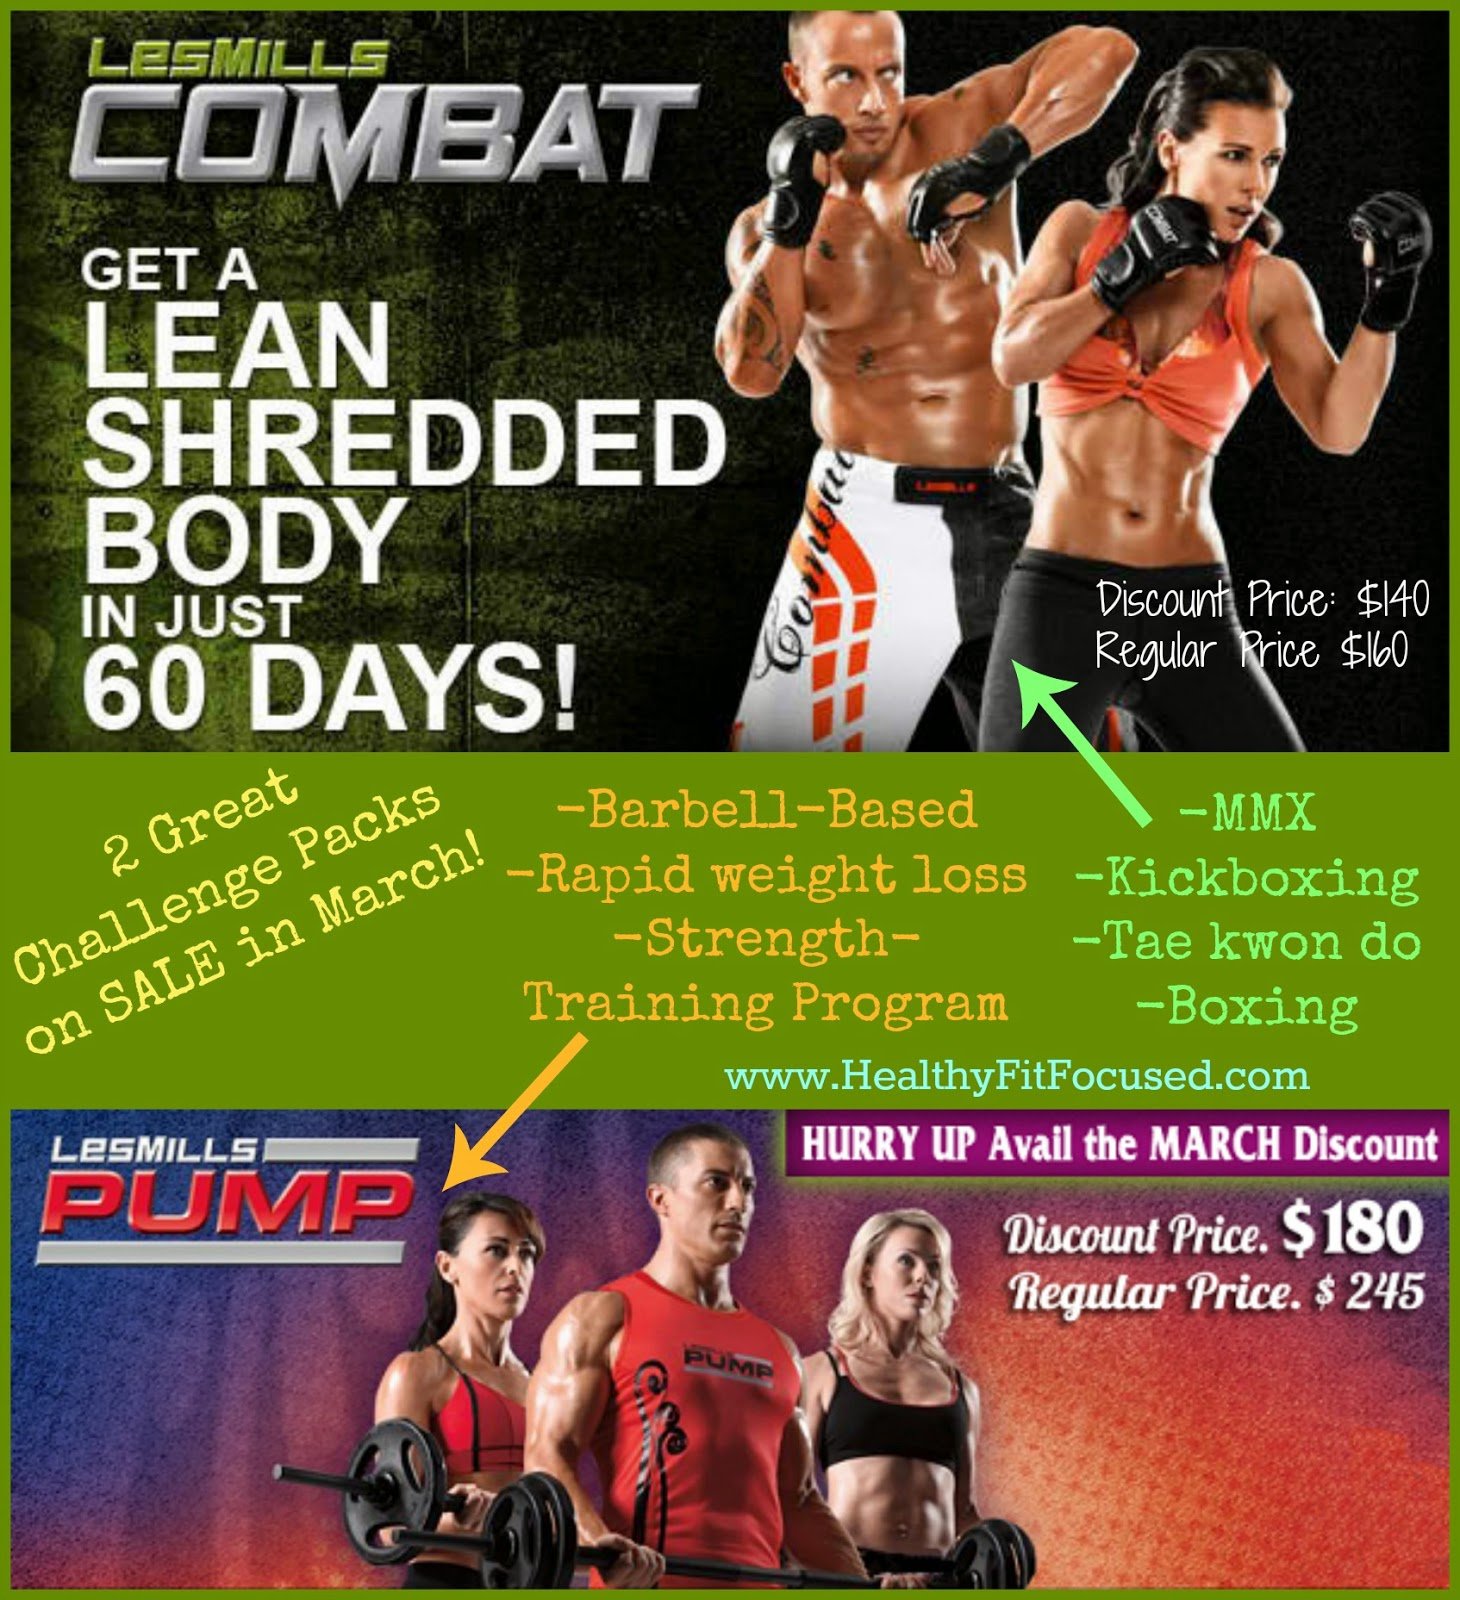 Les Mills Combat and Les Mills Pump on Sale, www.HealthyFitFocused.com